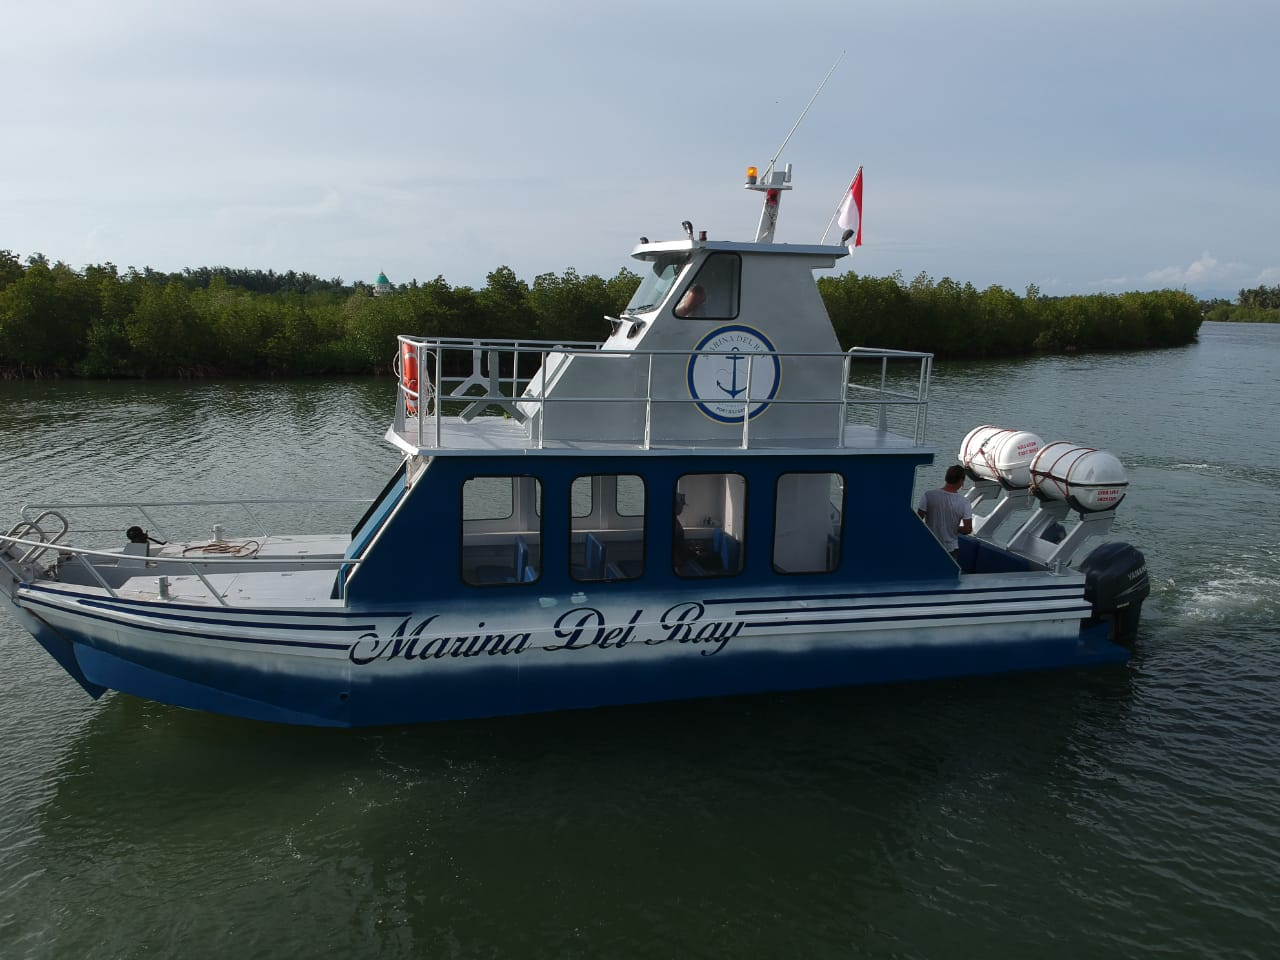 Ferry Service Bali to Marina Del Ray